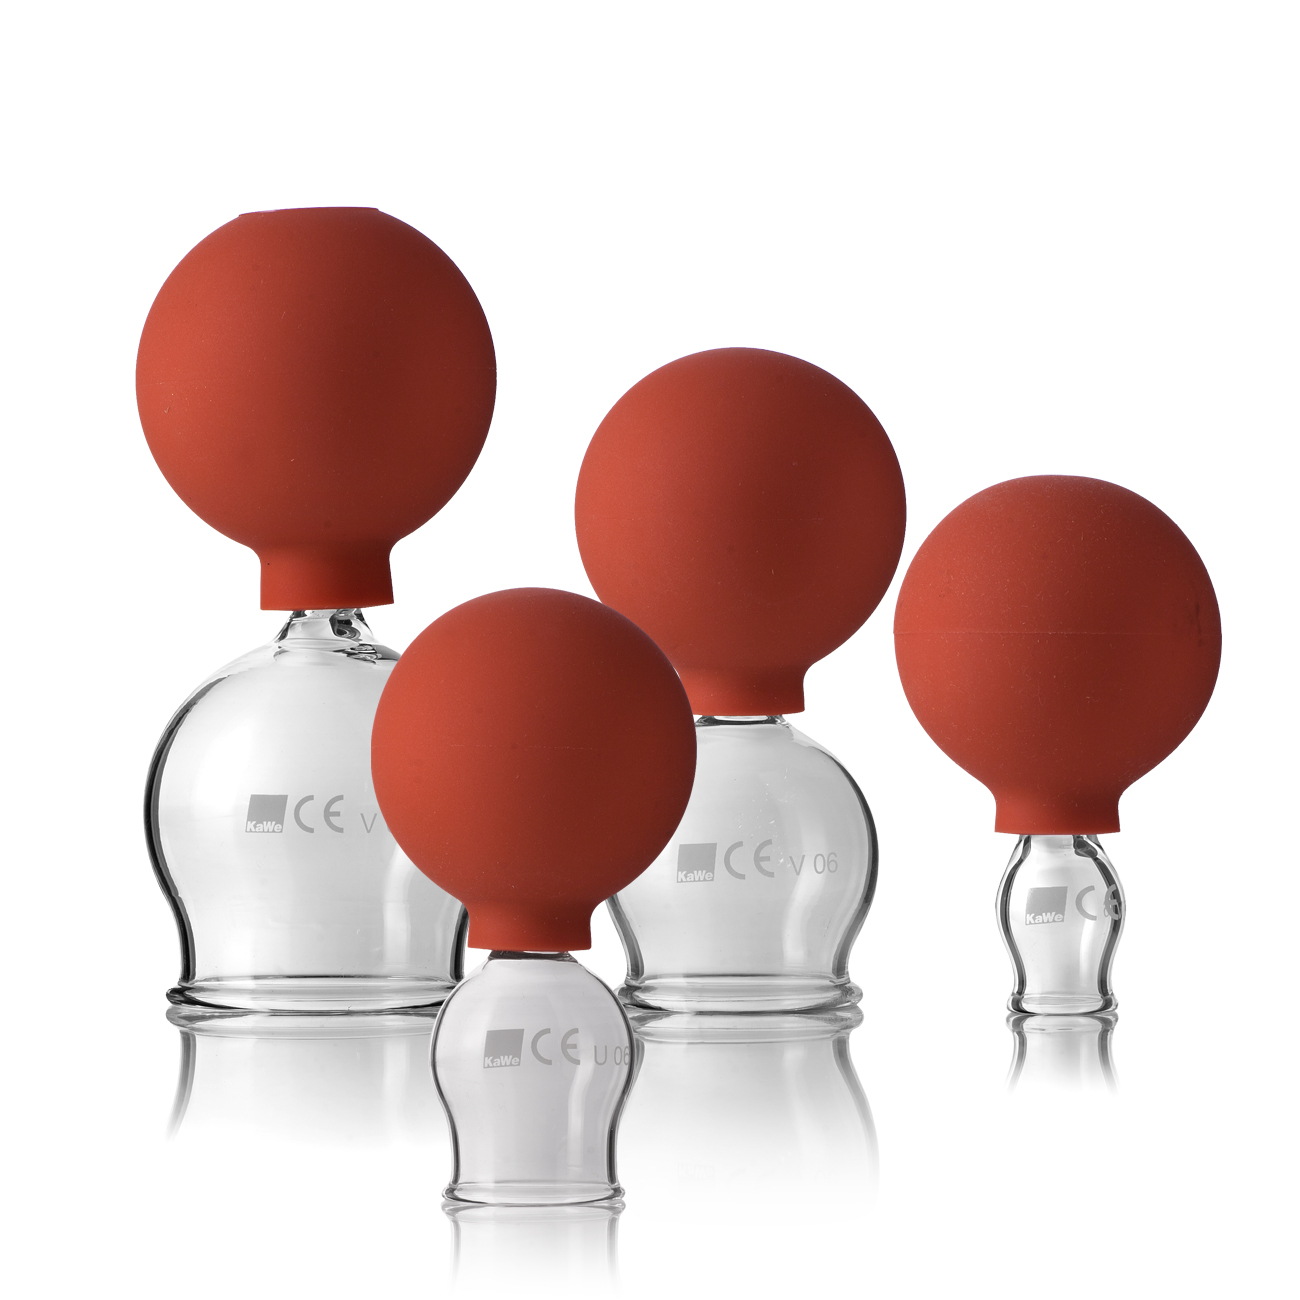 cupping cups